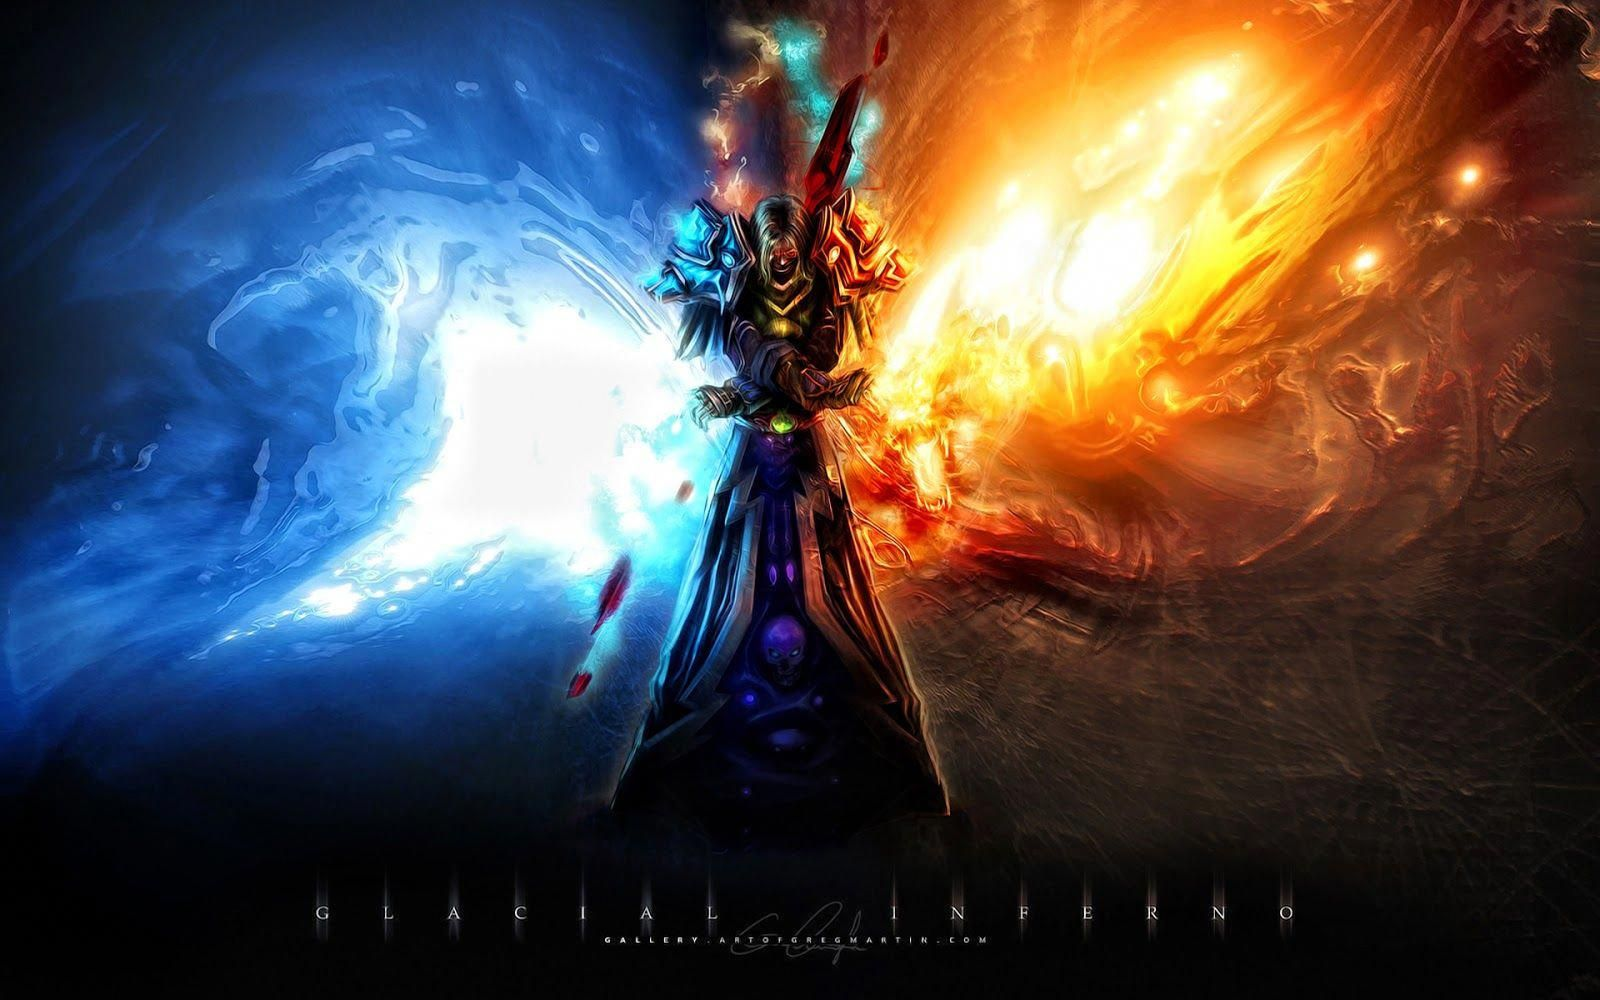 Cool Wallpapers Backgrounds Awesome Cool Fire Wallpapers Hd Wallpapers Pics Coolwallpapers Co World Of Warcraft Wallpaper Hd Cool Wallpapers Cool Wallpaper